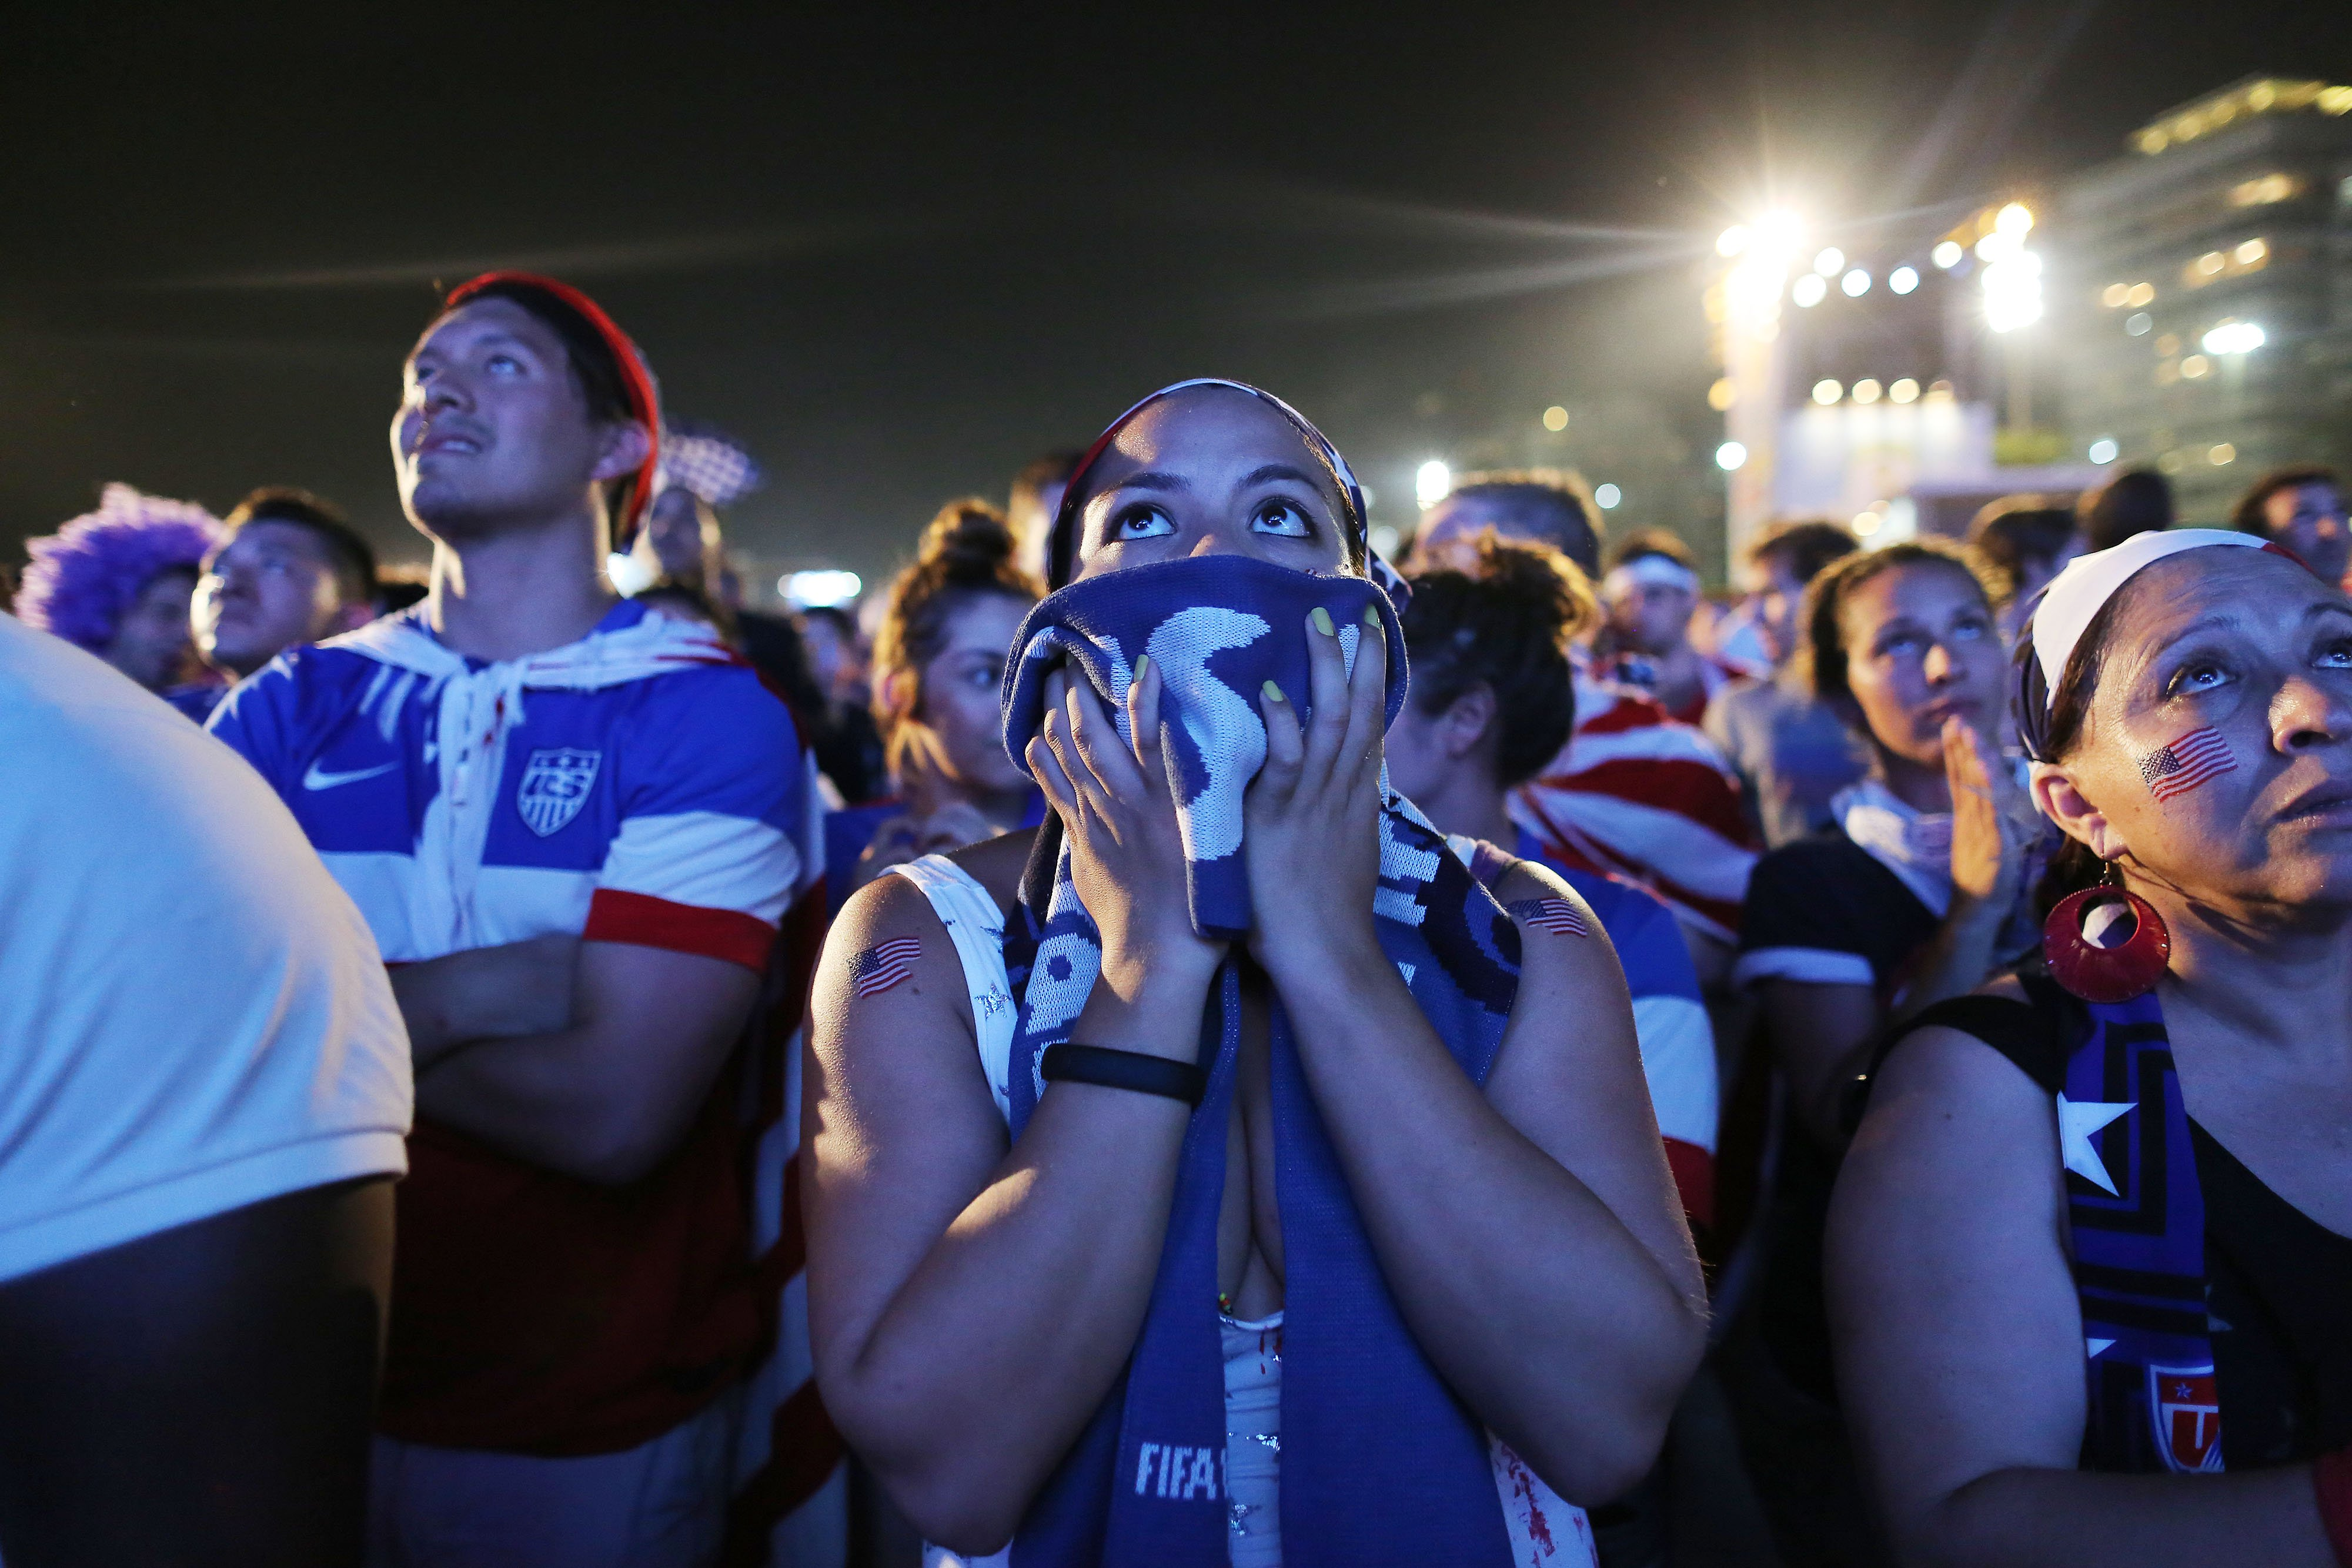 Soccer fans of the U.S. national soccer watch a live broadcast of the soccer World Cup match between USA and Ghana, inside the FIFA Fan Fest area on Copacabana beach, Rio de Janeiro, Brazil on June 16, 2014.